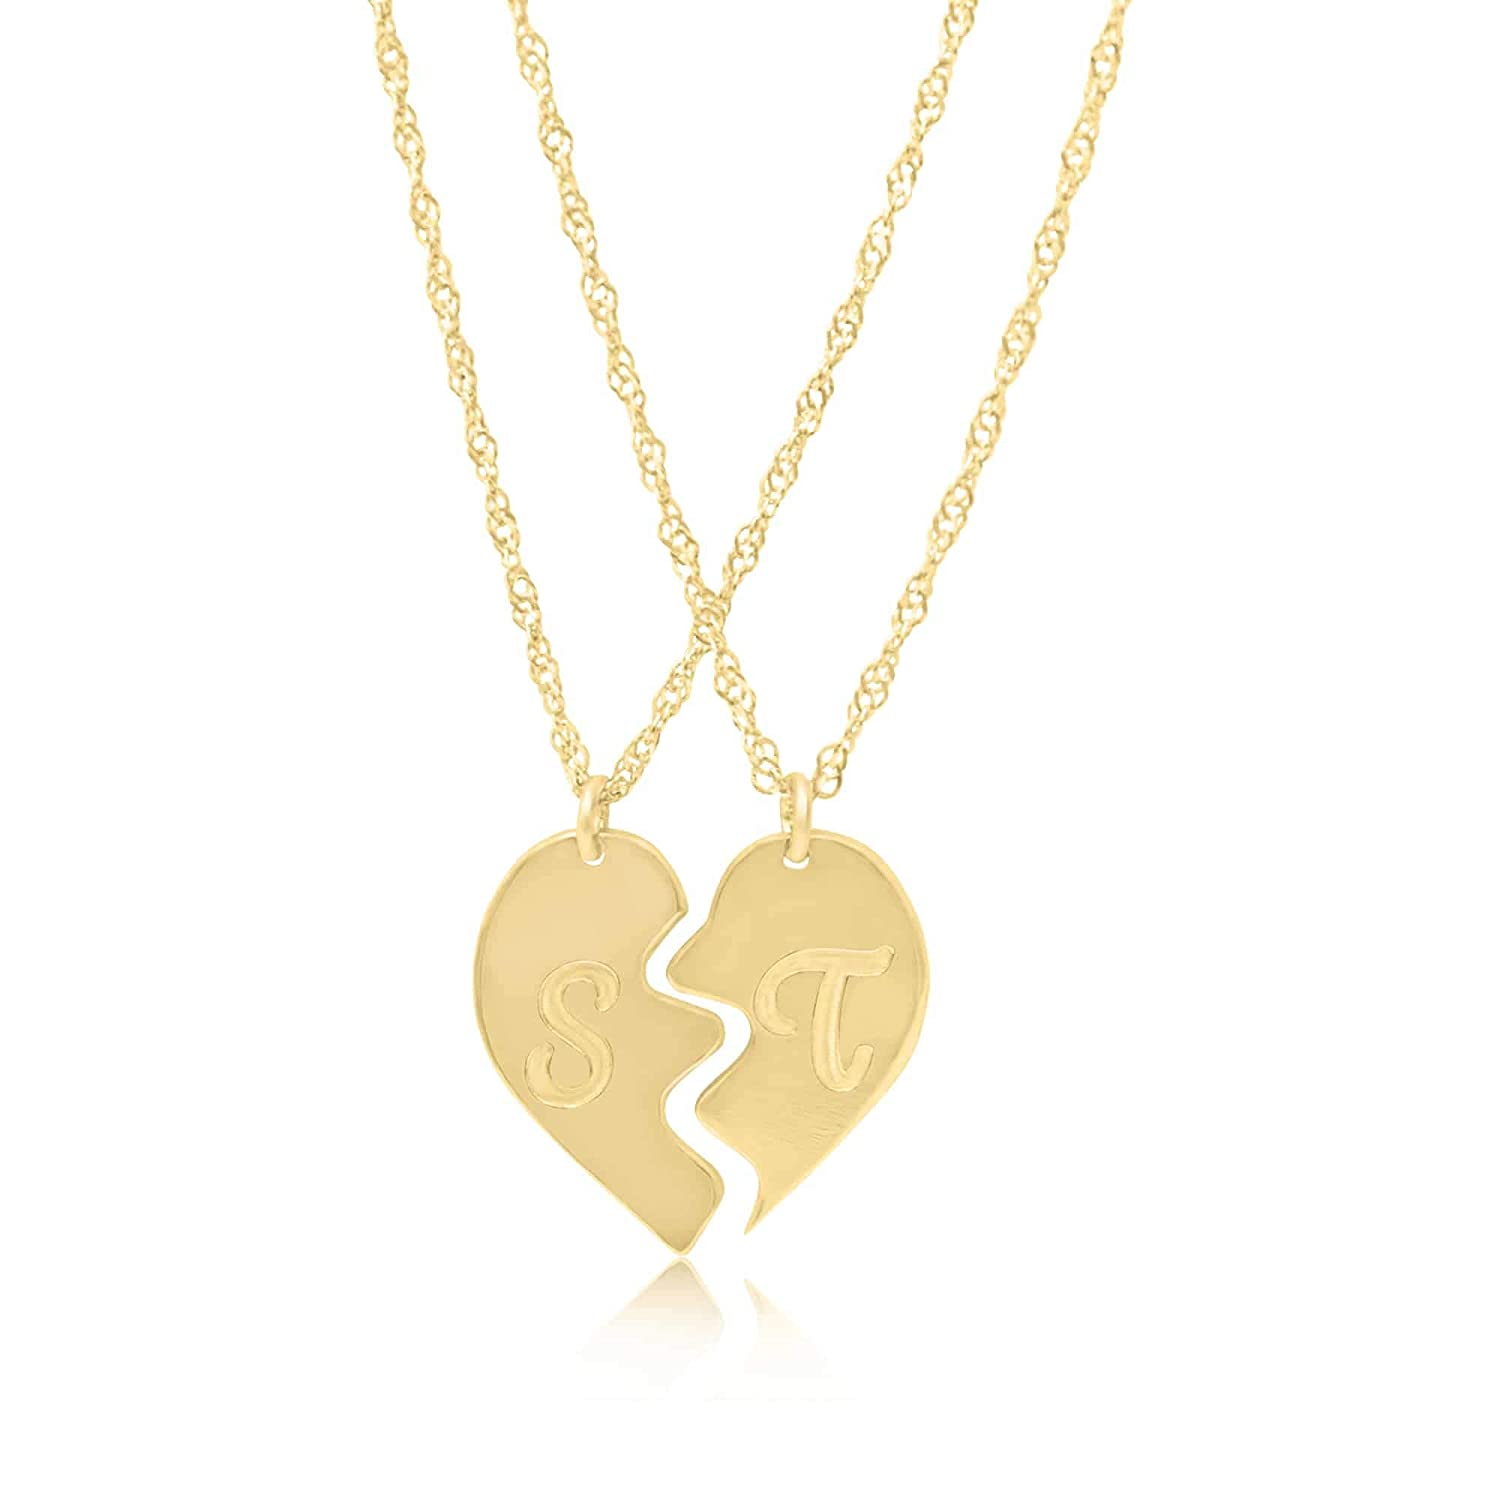 485d2bd9fa74 Amazon.com  Friendship Necklace 18k Gold Plated Broken Heart Initial  Necklace